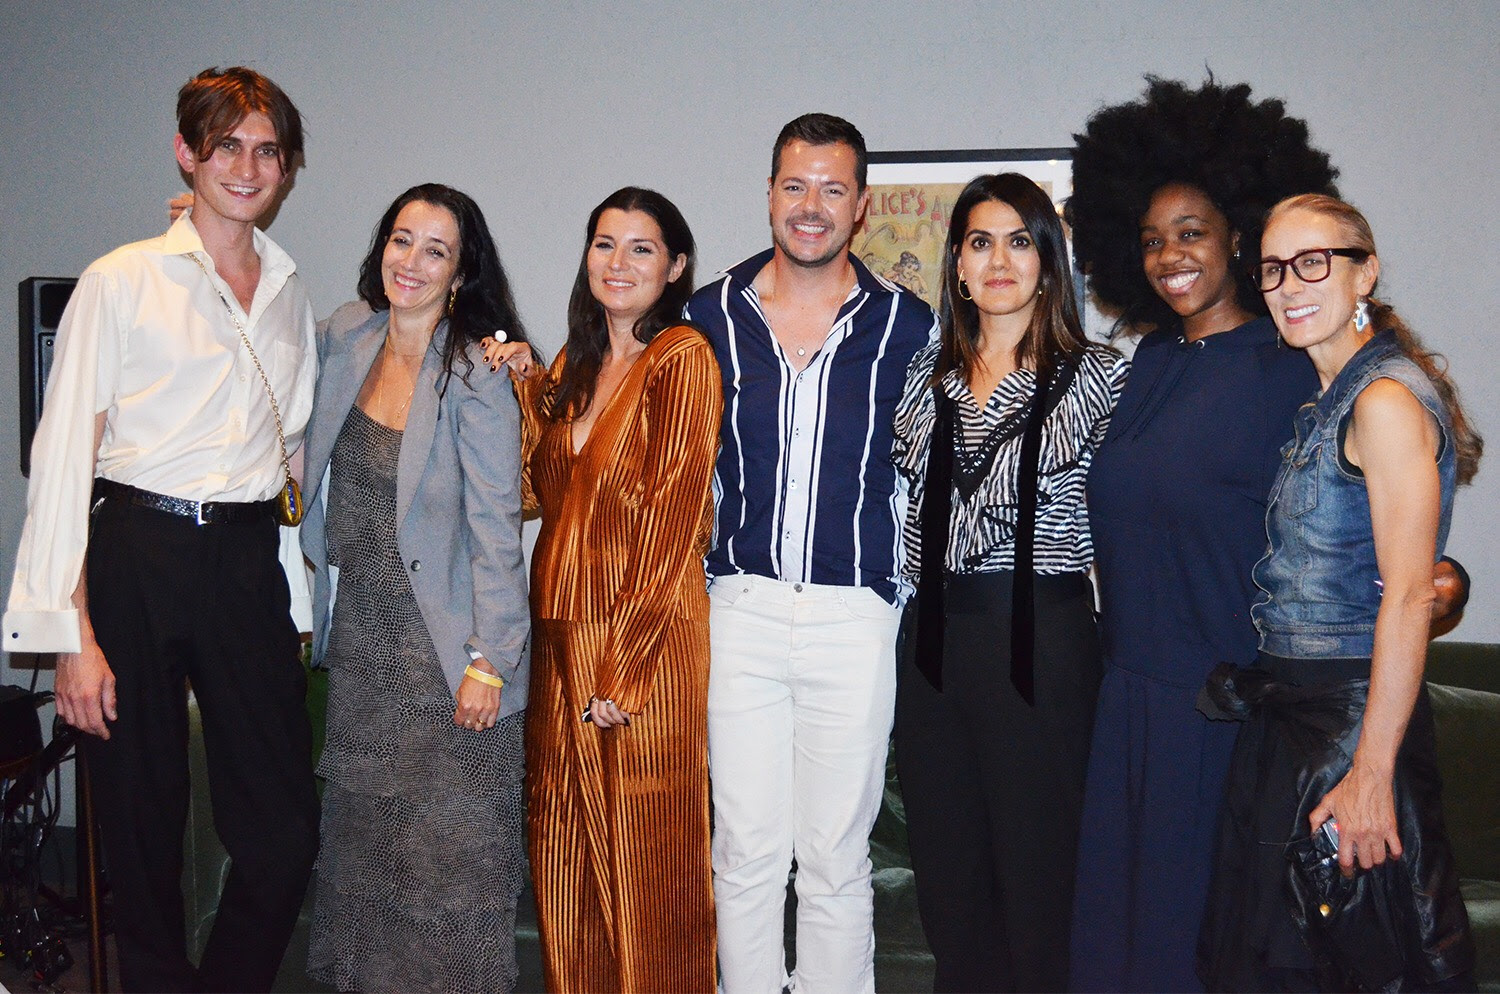 FASHION ROUNDTABLE X THE HOX: BODY IMAGE & IDENTITY POLITICS WORKSHOP - LED BY CARYN FRANKLINSEPTEMBER 2018Speakers: Jacob Mallinson Bird, Chidera Eggerue, Grace Woodward, Jules Von Hep, Farrah StorrCurated shop with Paradise Row, Birdsong London, Milk Tooth London and Gather and See.